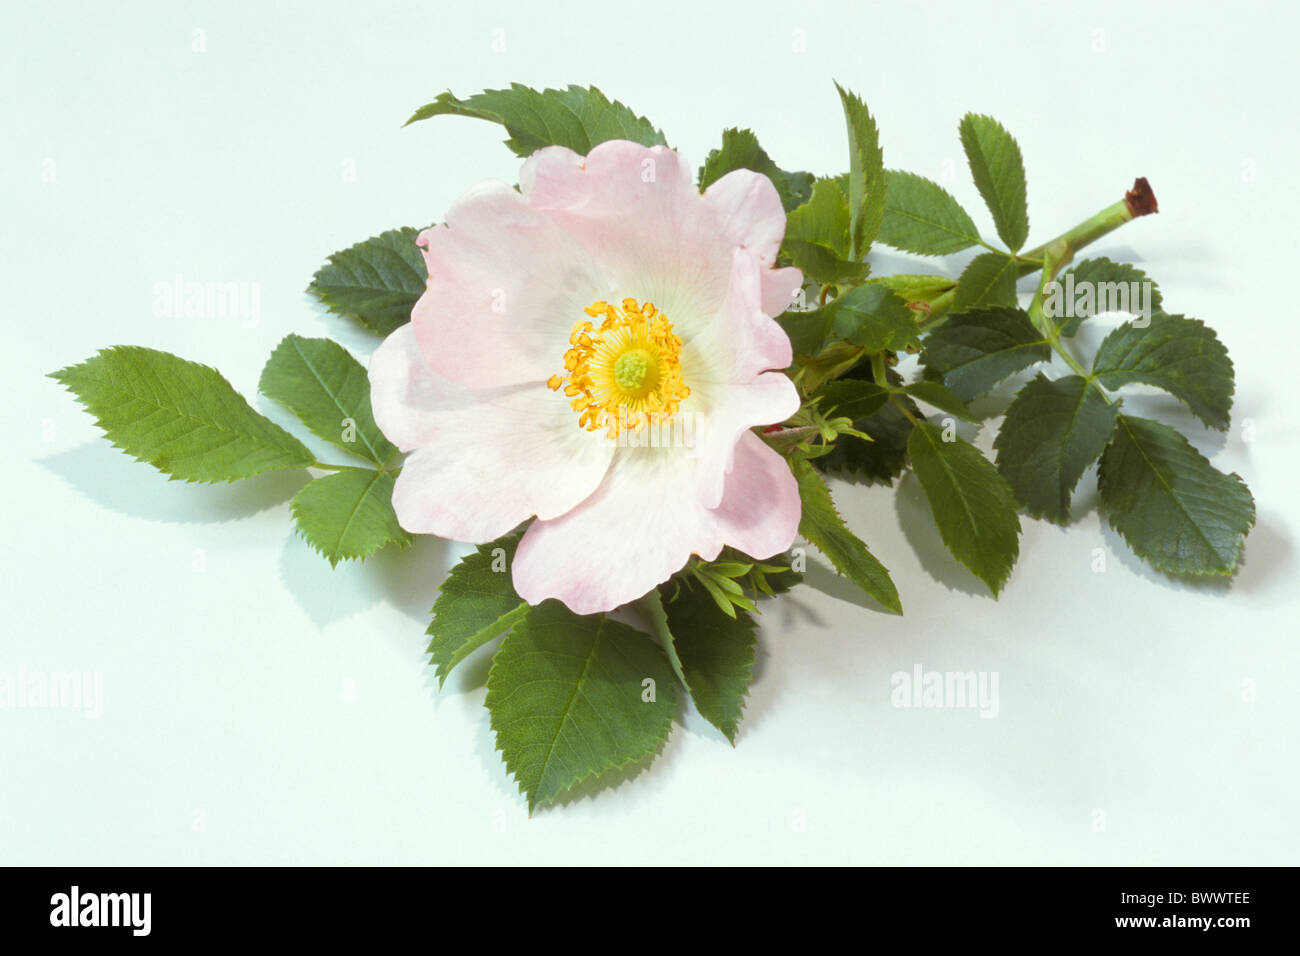 Dog Rose (Rosa canina), flower and leaves, studio picture), flower and leaves, studio picture. Stock Photo